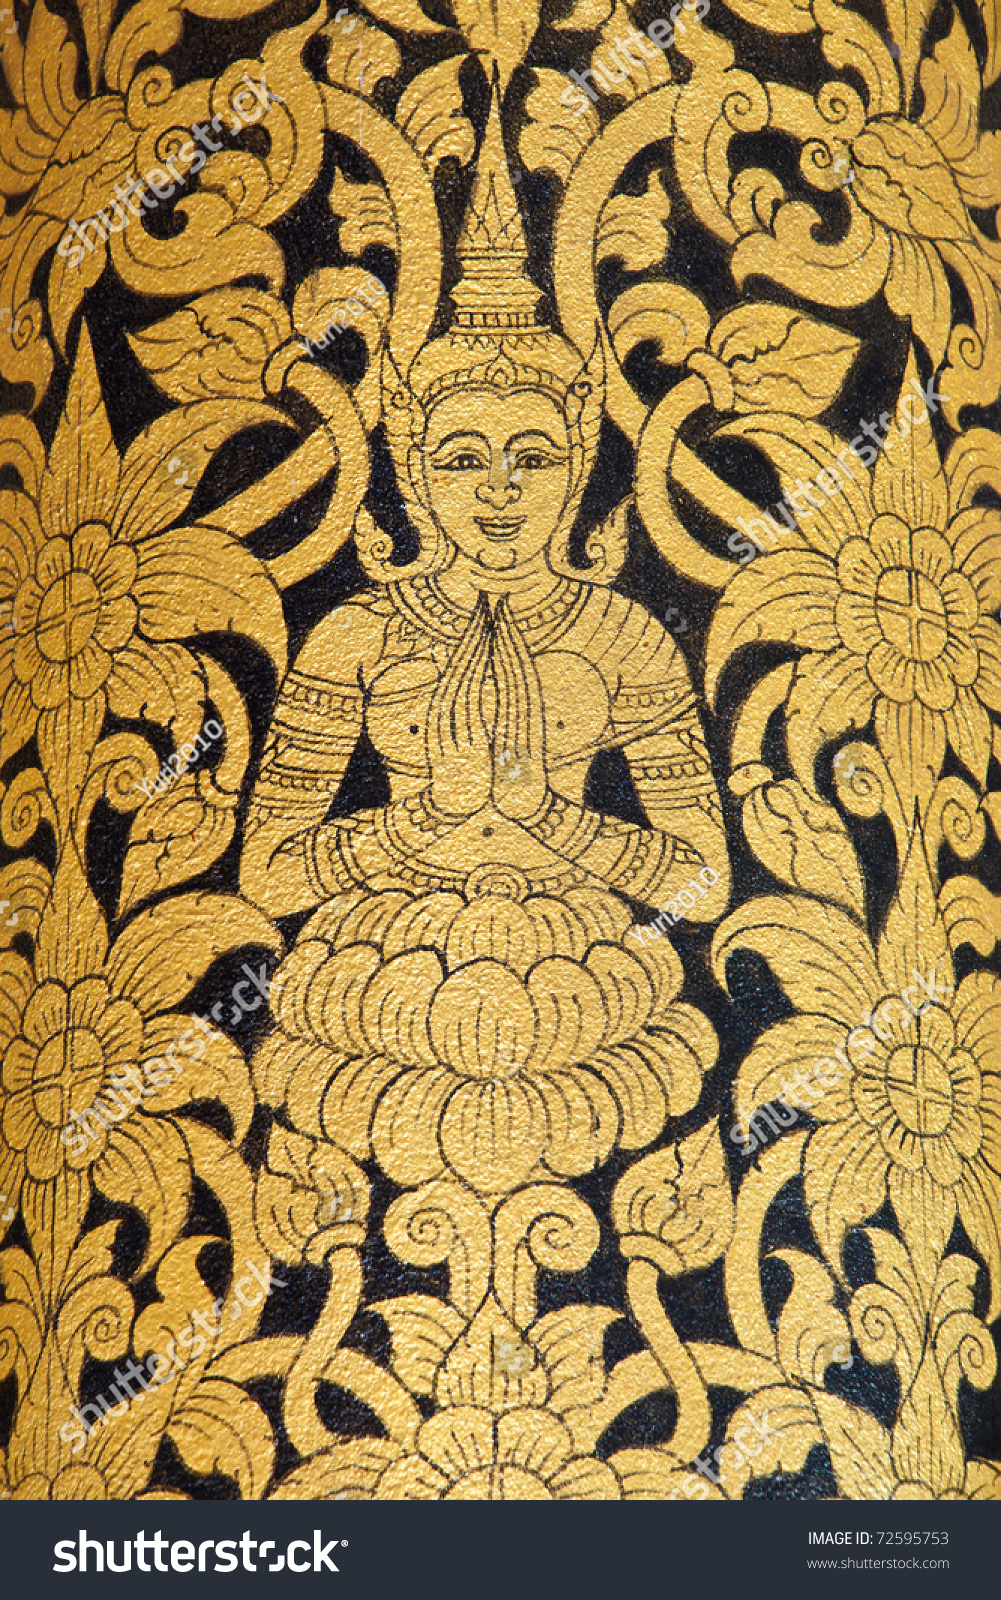 Beautiful Balinese Wall Art Sketch - The Wall Art Decorations ...